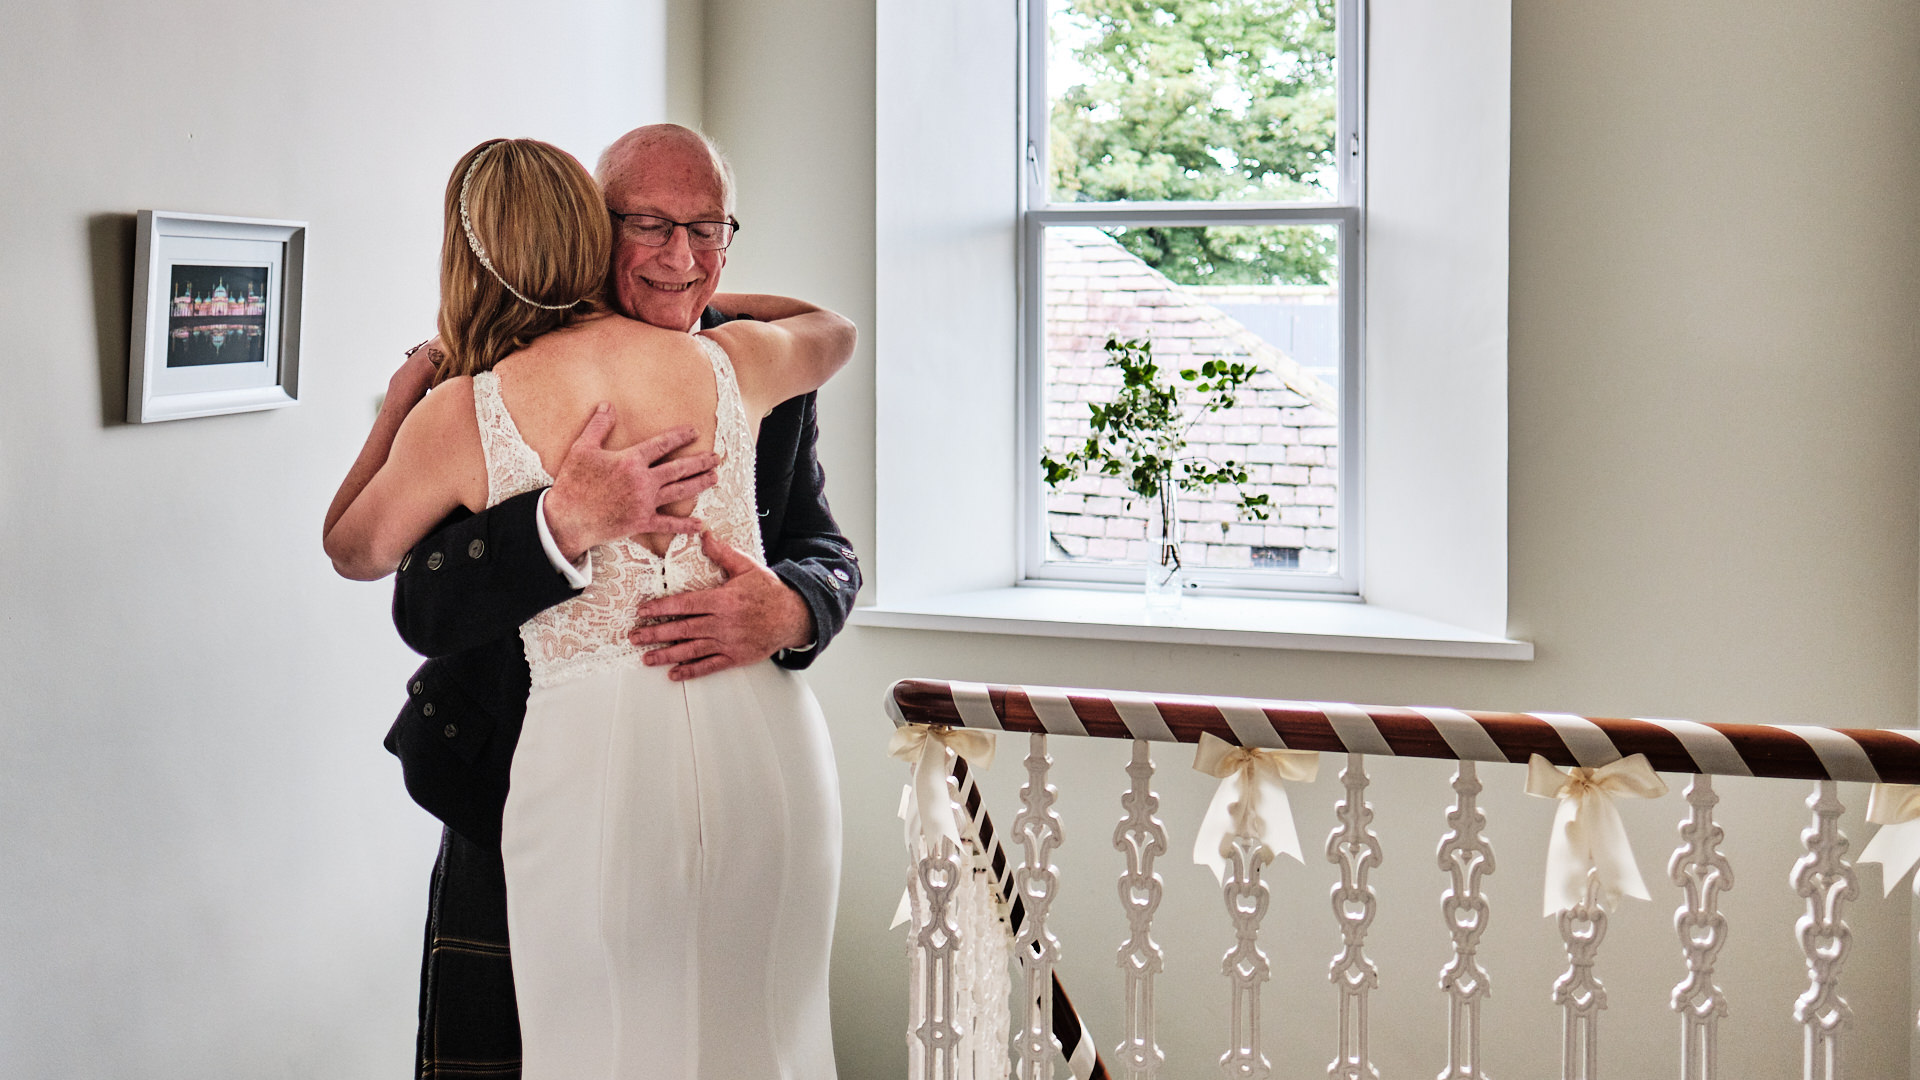 Colour photograph of the father of the bride cuddling her after seeing her in her wedding dress for the first time